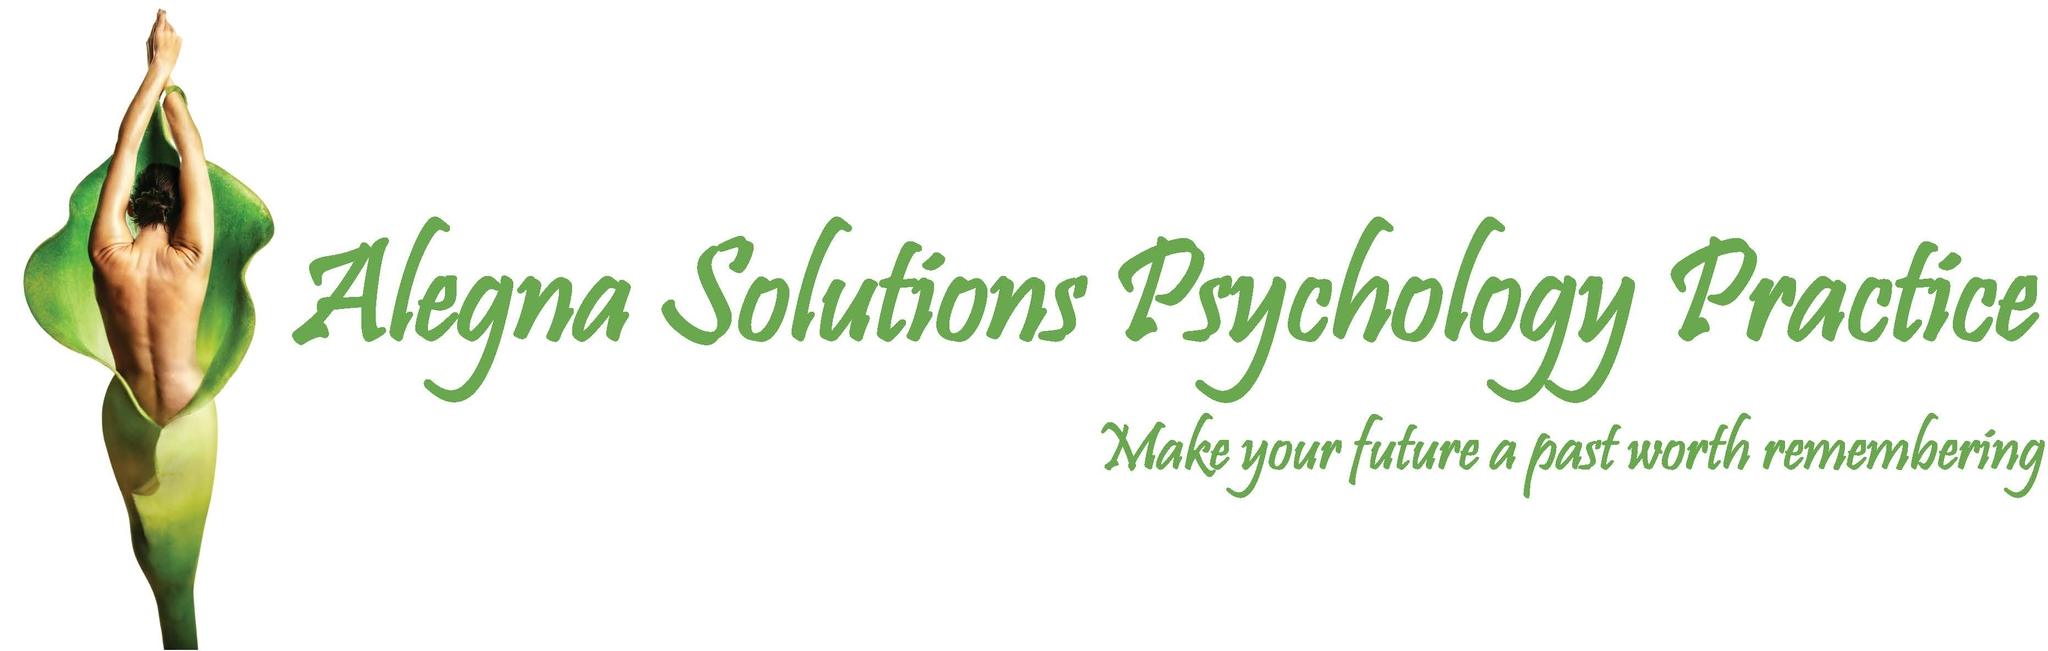 Alegna Solutions Psychology Group Logo